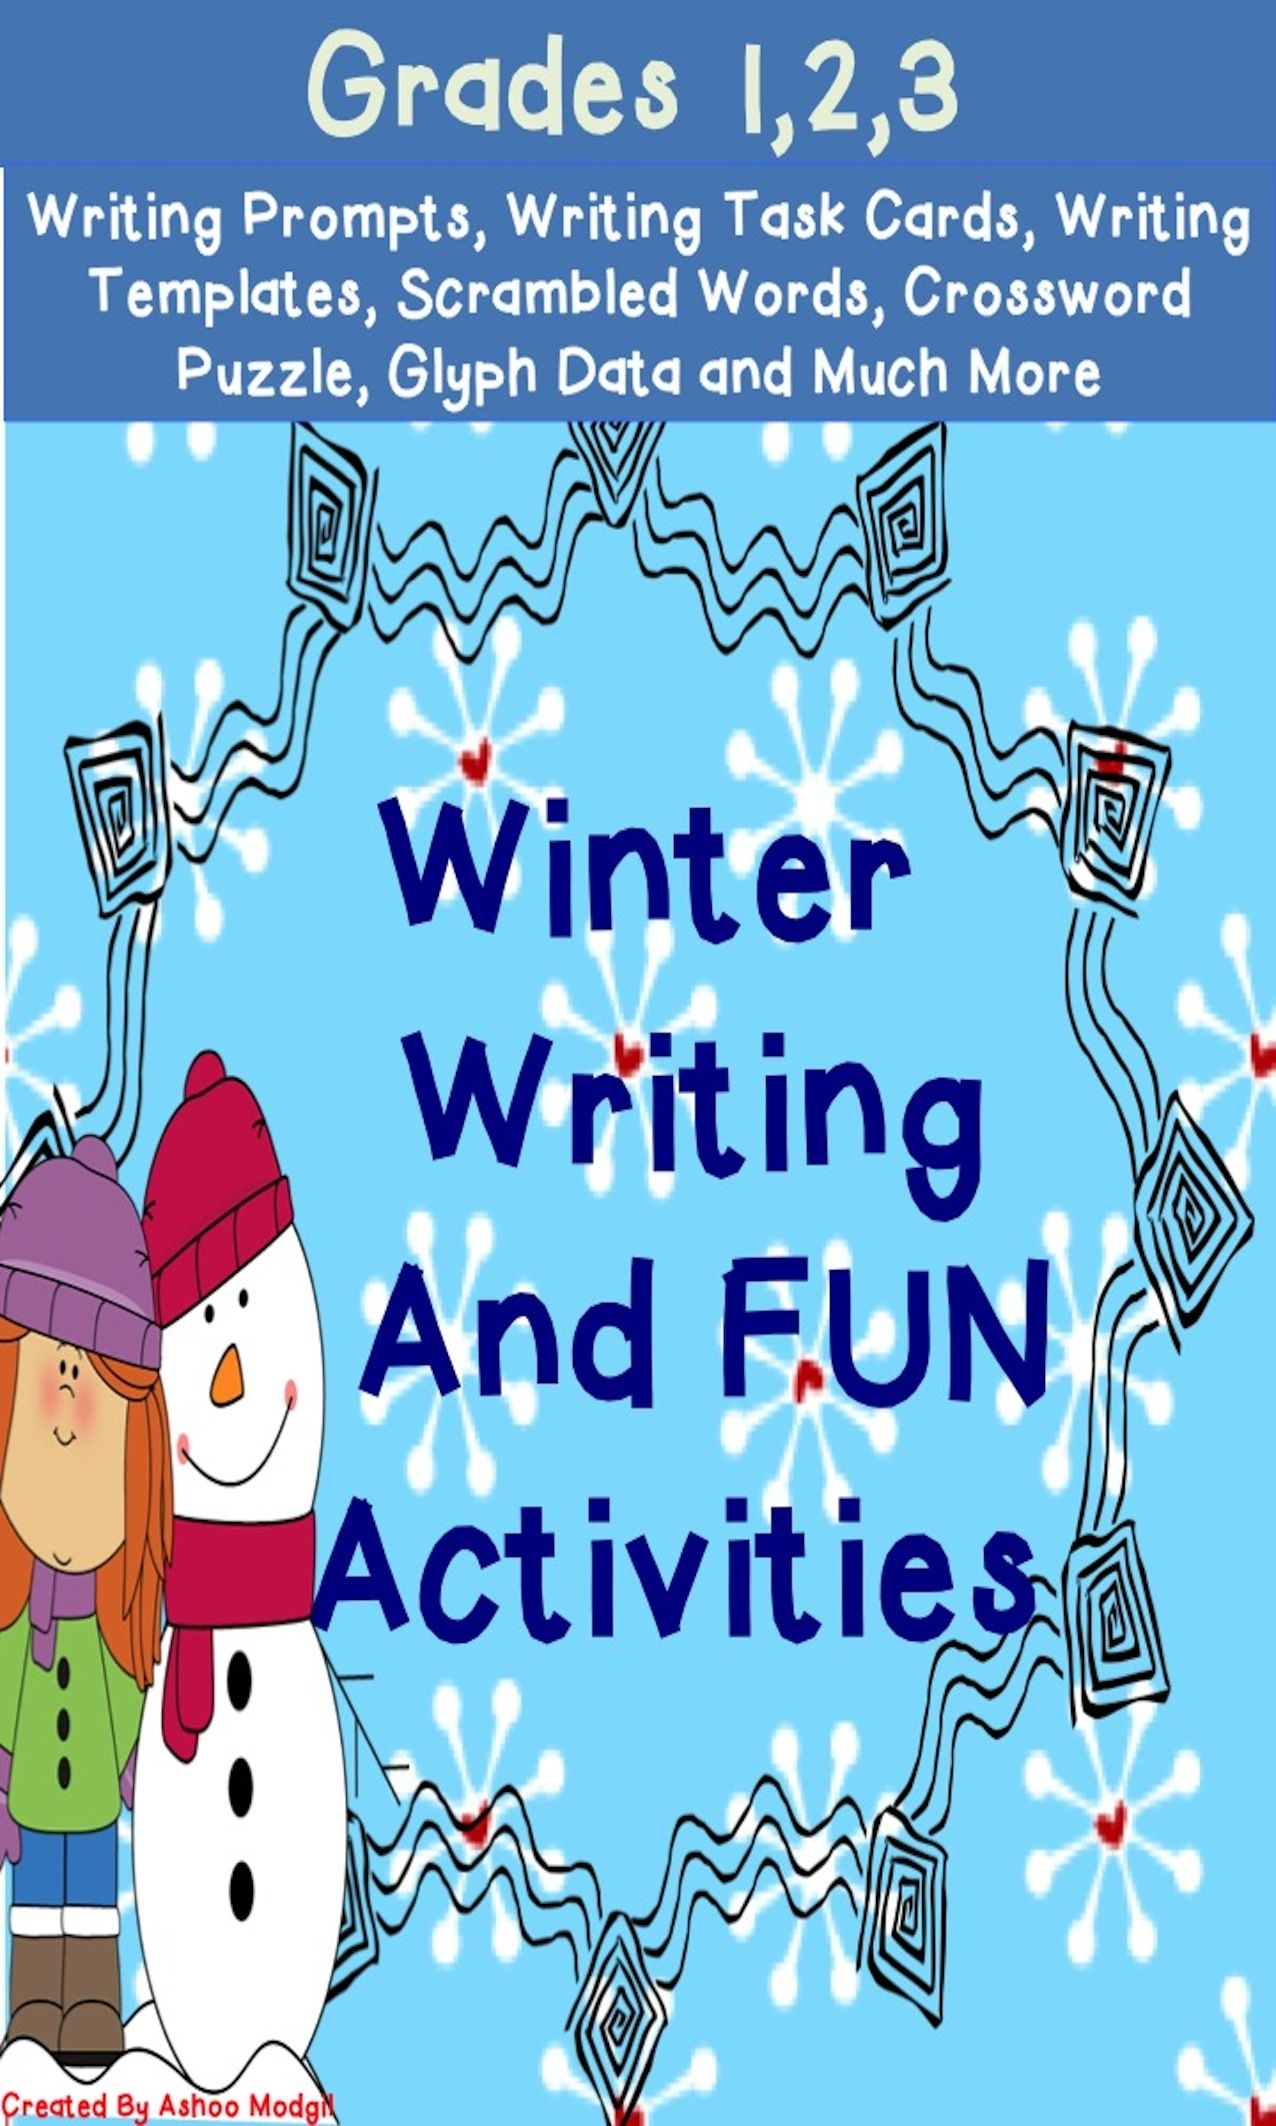 Winter Writing With Images